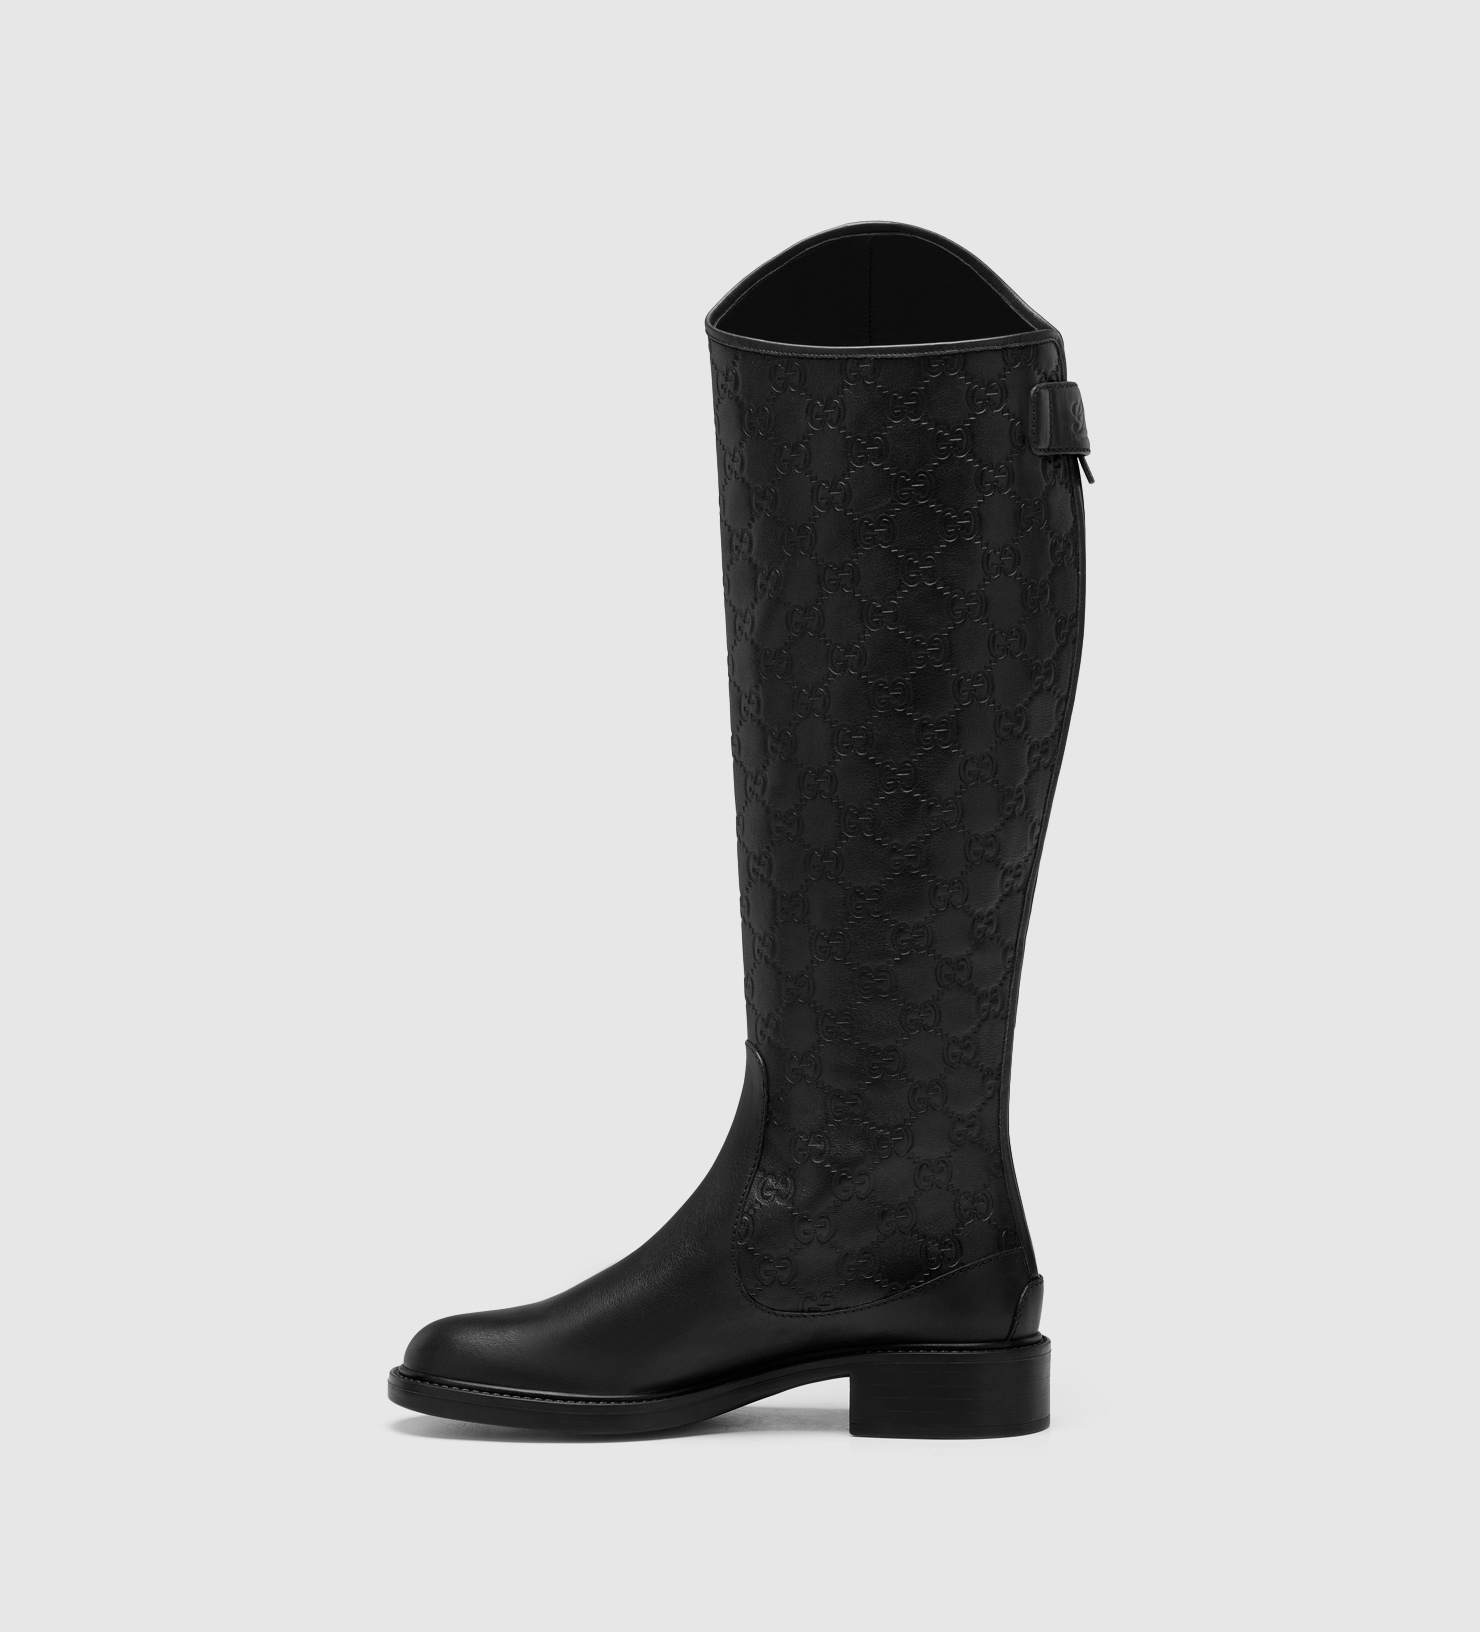 9fa0a406fecee Gucci Maud Black Leather Tall Flat Boot in Black - Lyst